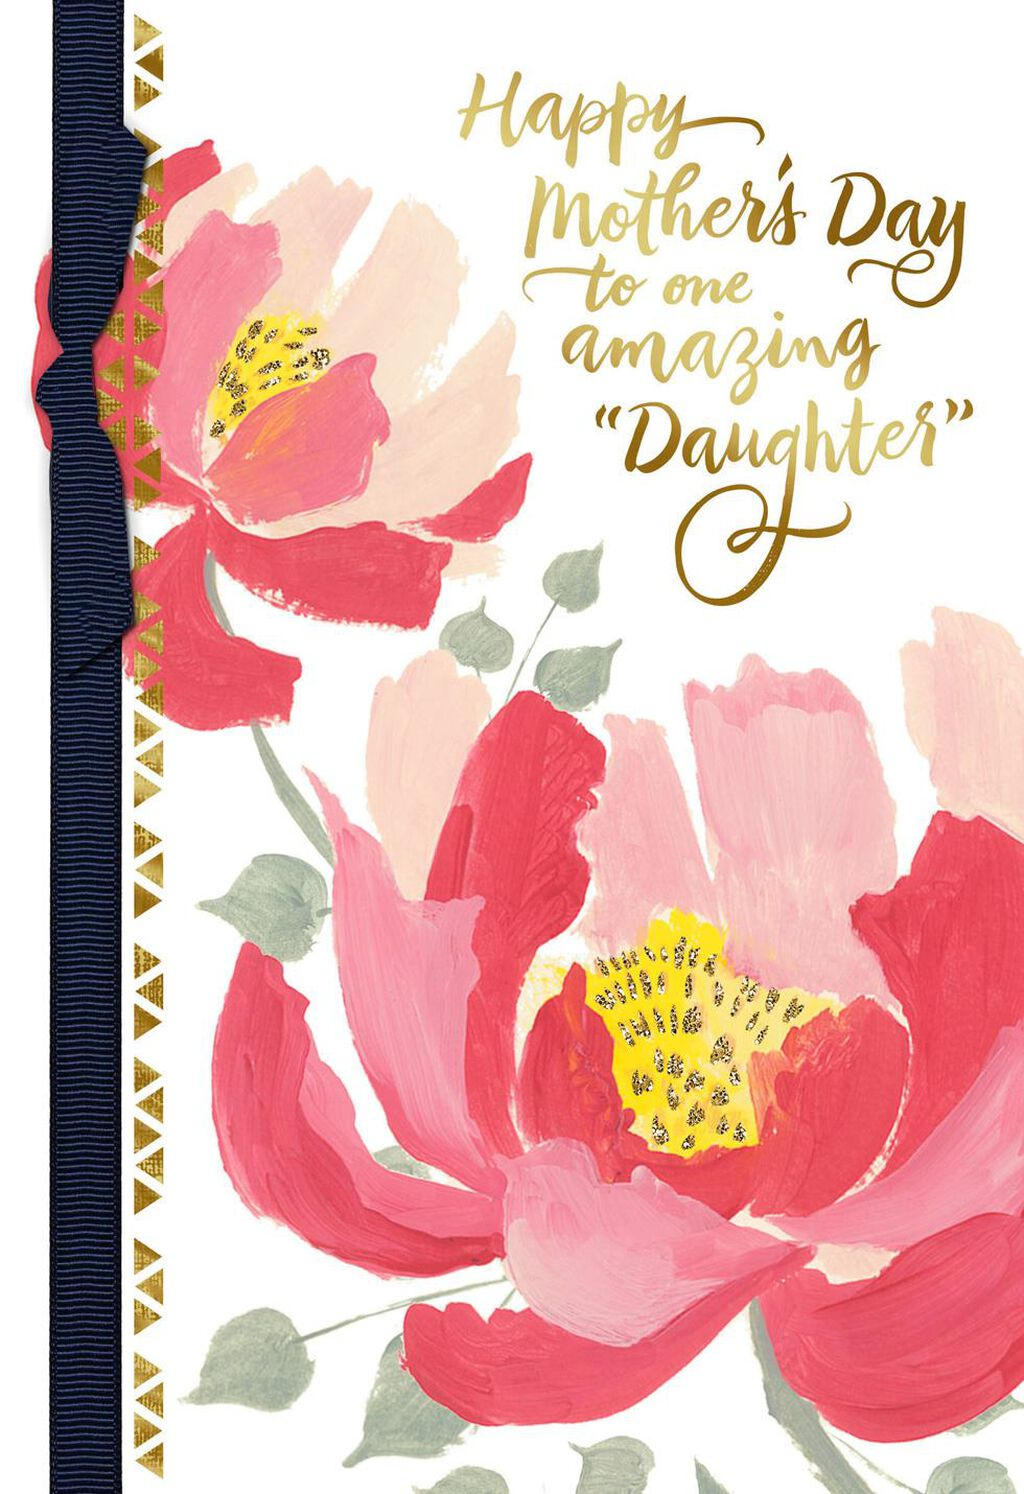 Painted Pink Flowers Like A Daughter Mothers Day Card Greeting